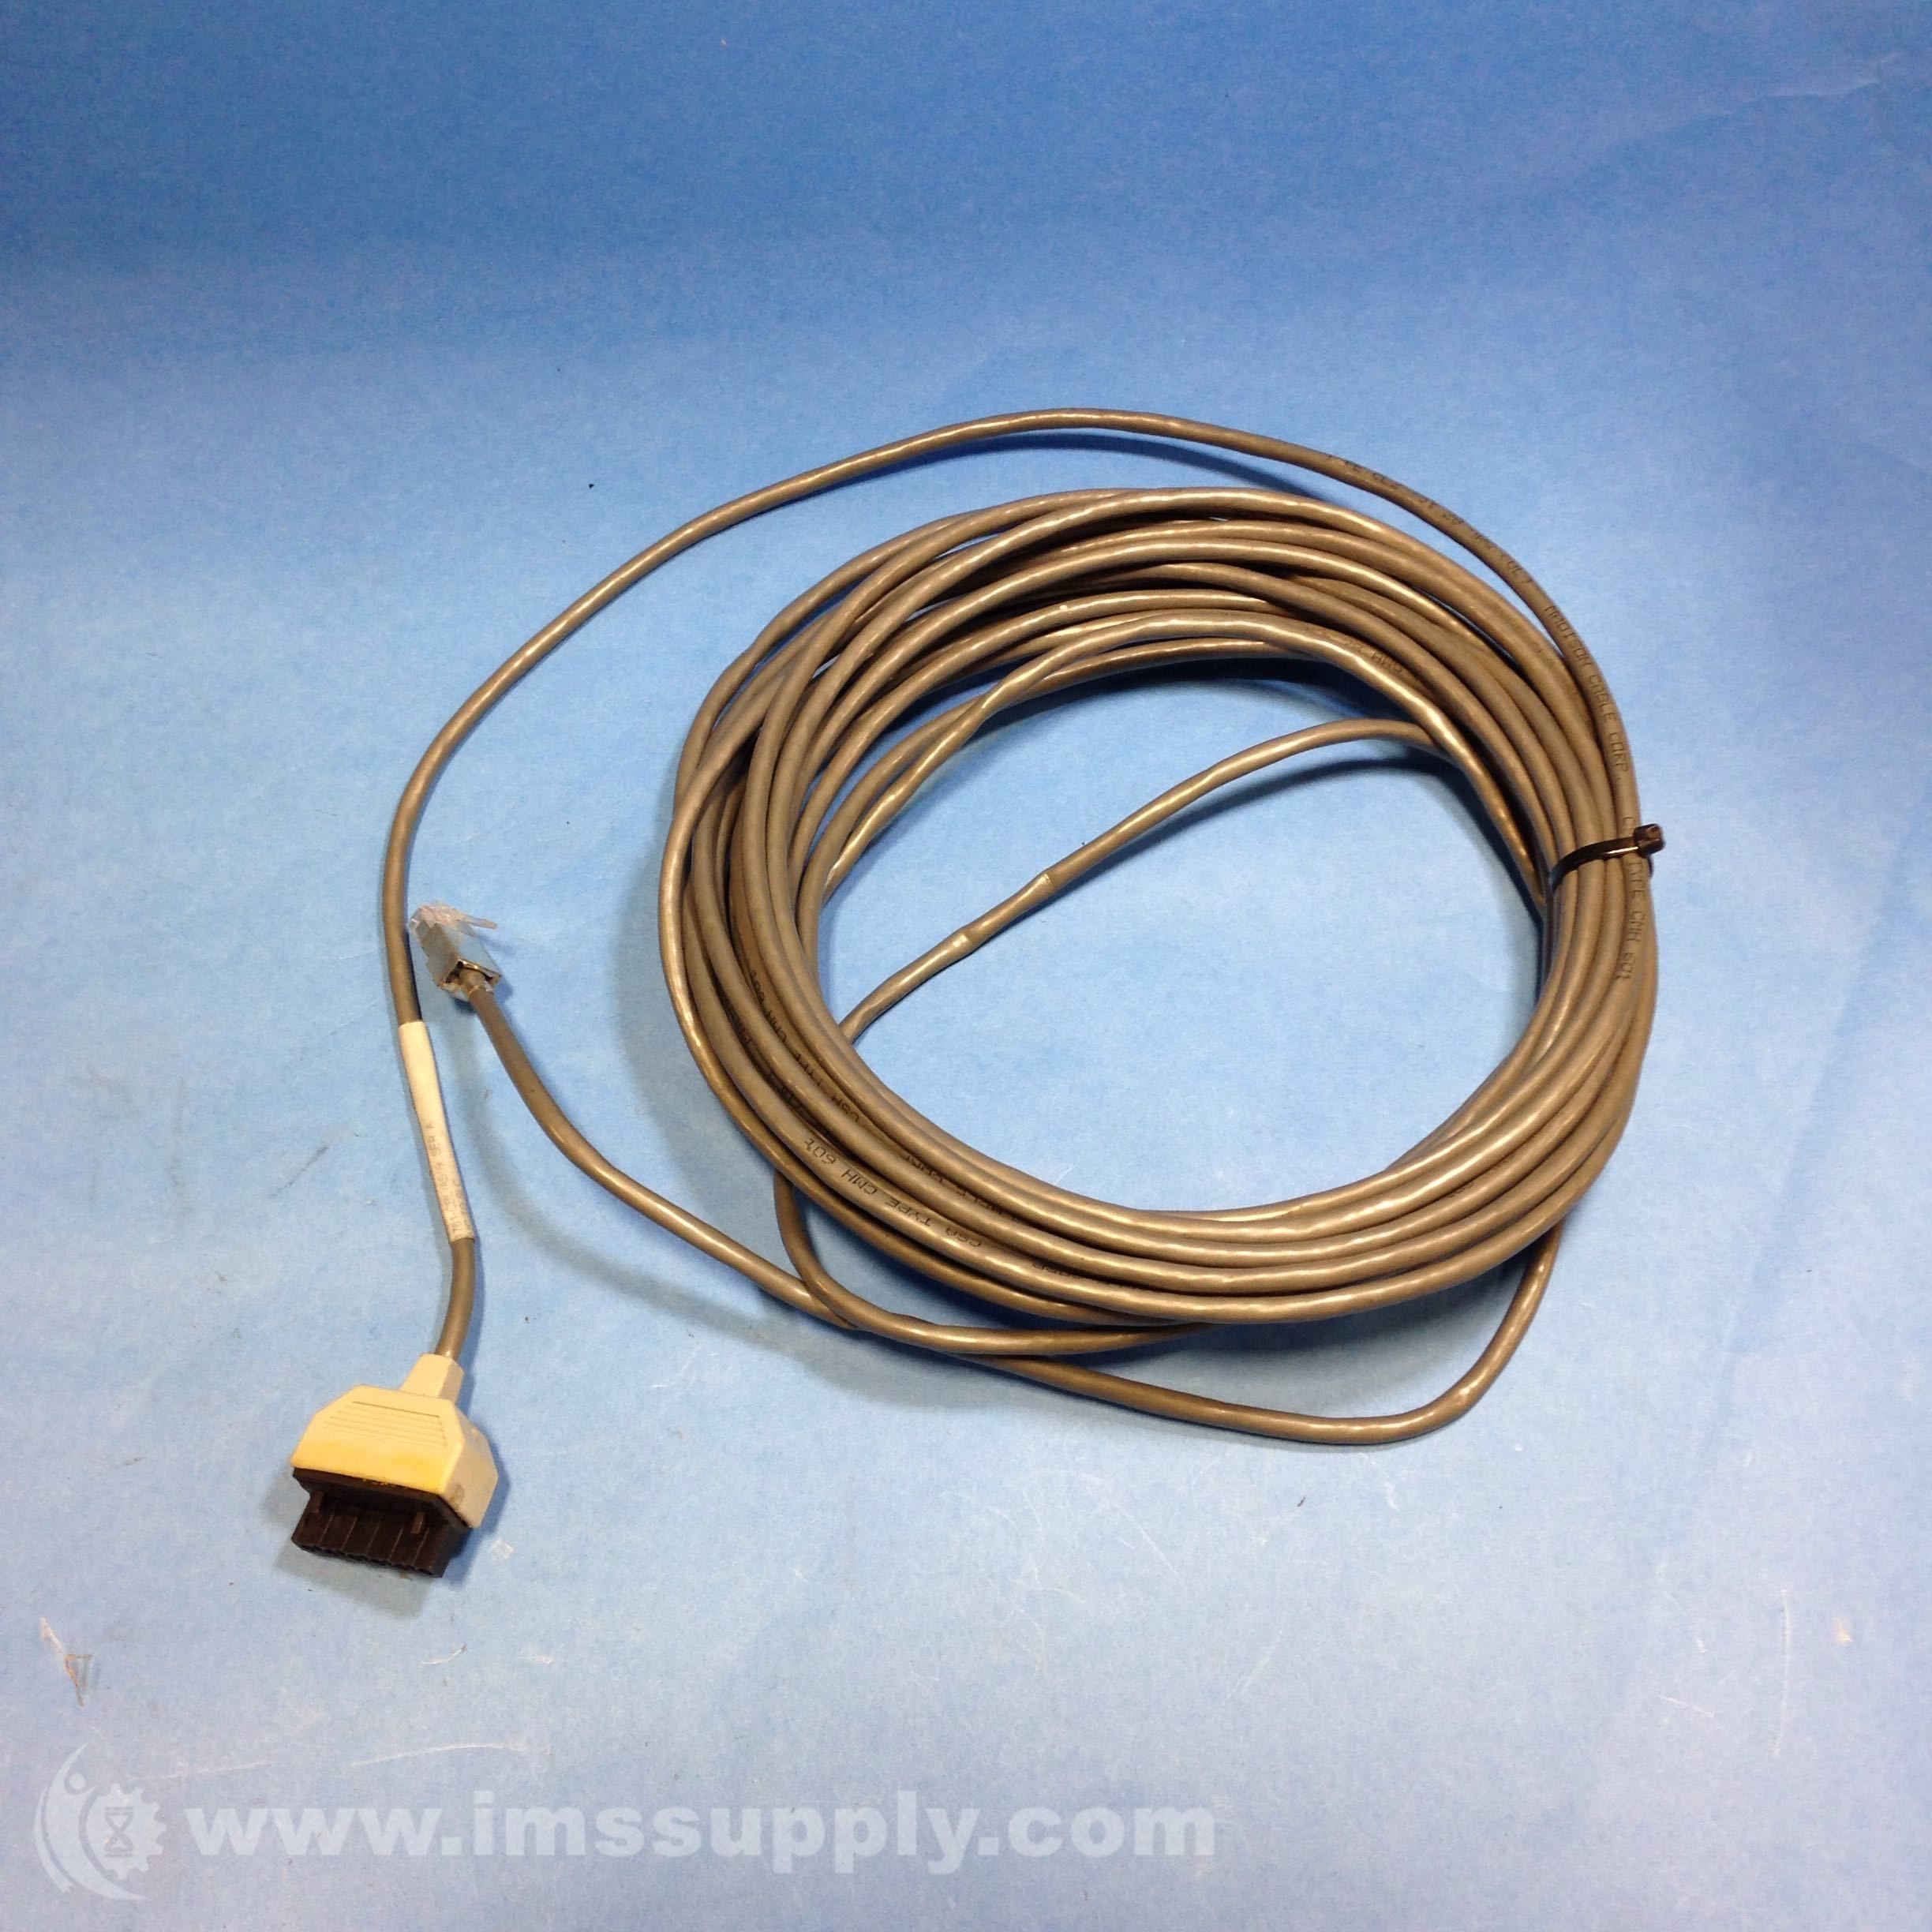 ALLEN BRADLEY 761-CBL-AS09 CABLE: SLC FIXED | Great Deals ...